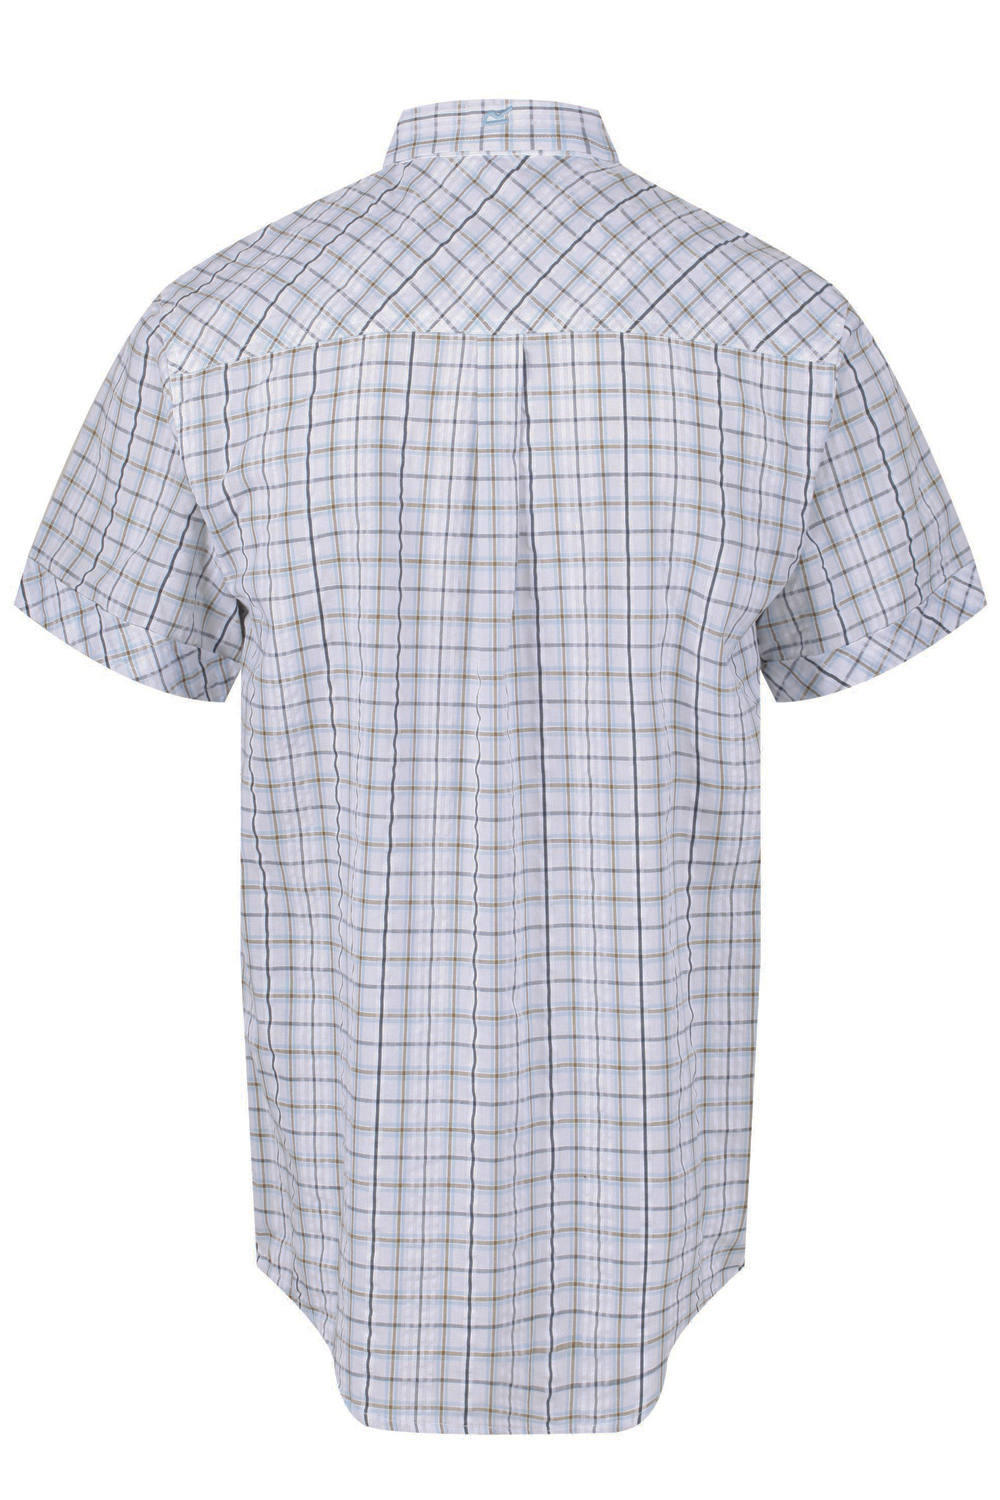 Regatta-Mens-Deakin-II-Coolweave-Cotton-Short-Sleeved-Summer-Check-Shirt-RRP-50 thumbnail 18